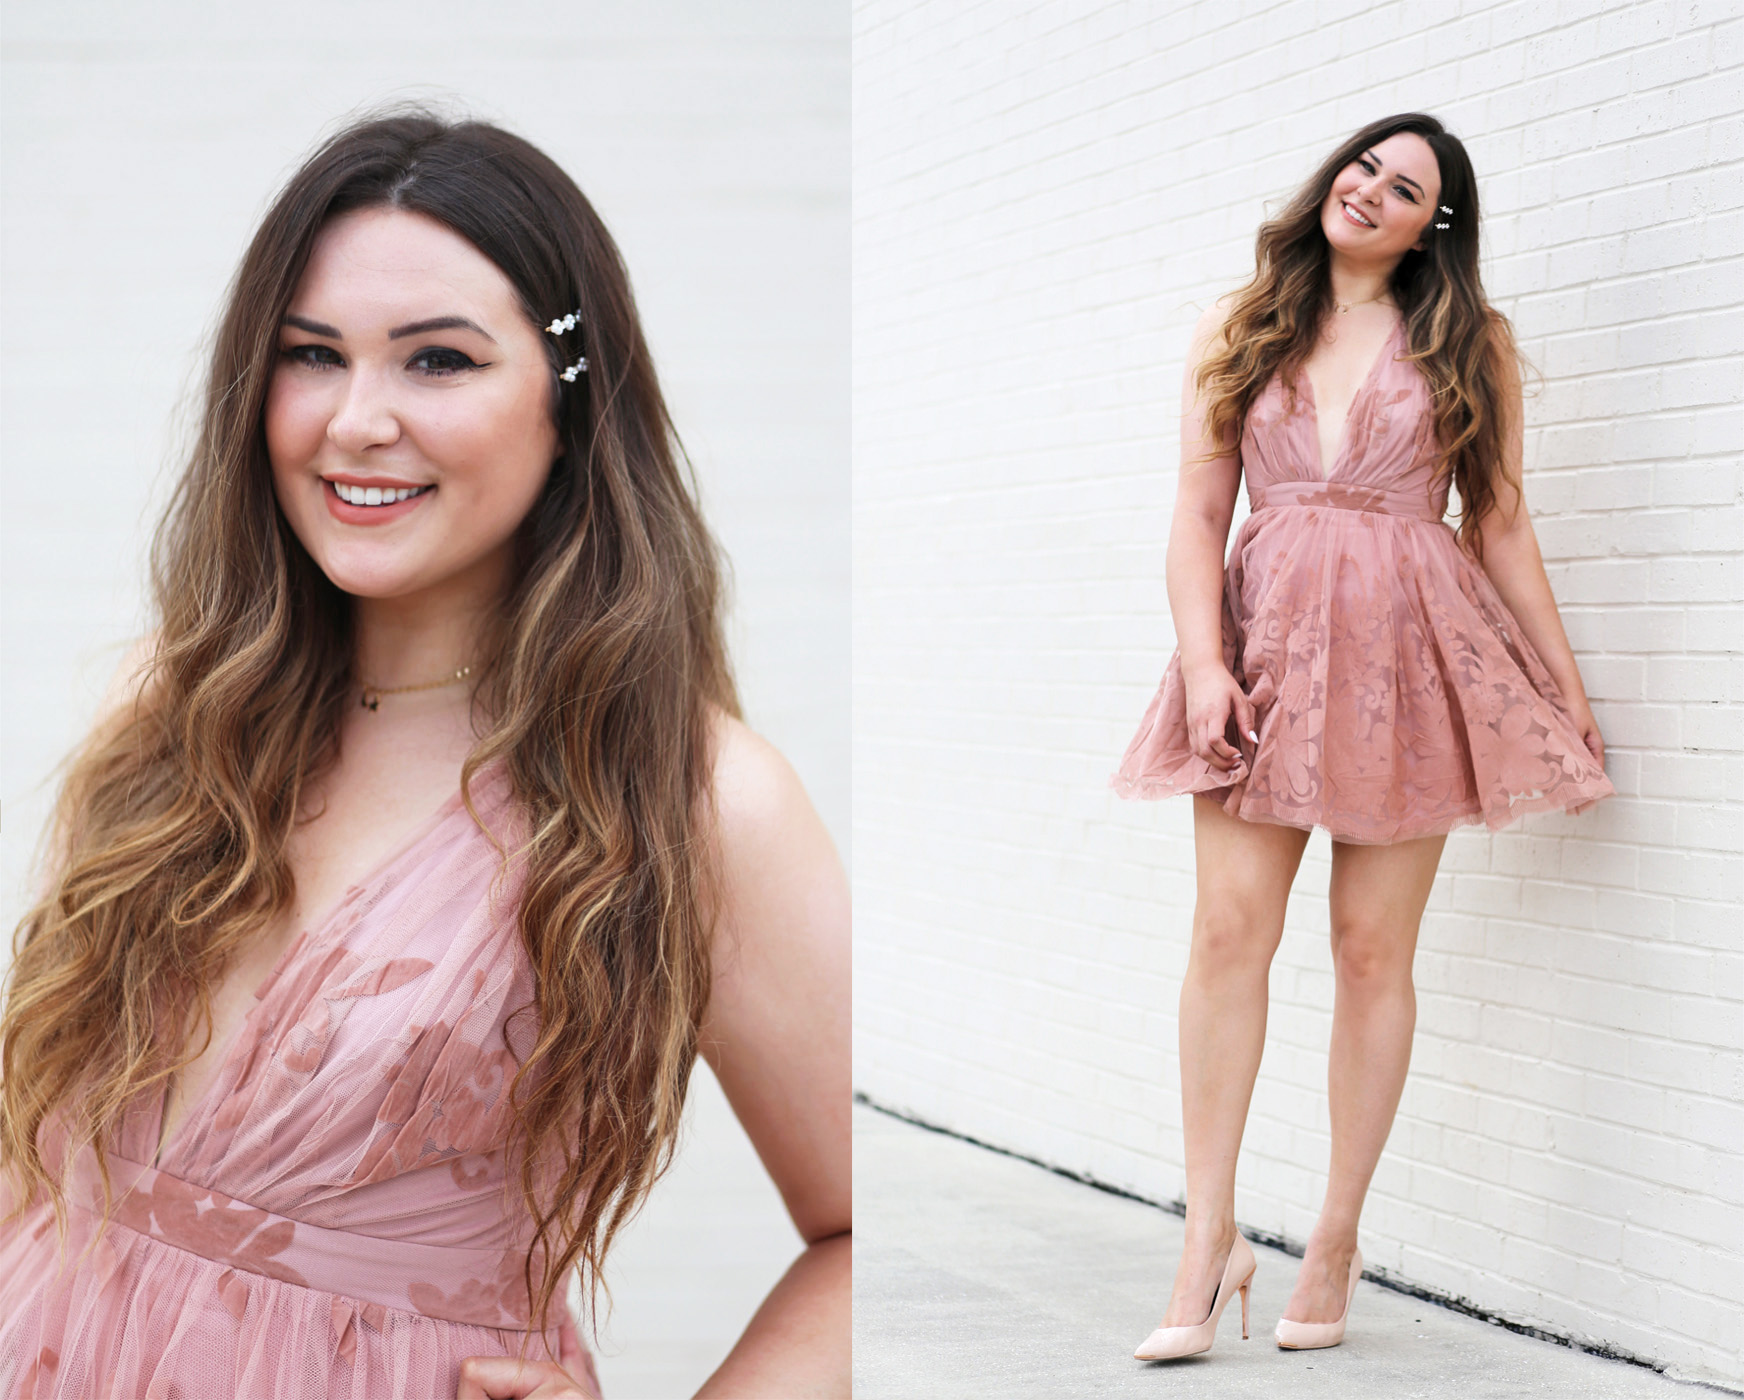 how-to-elevate-curled-hair | Mash Elle beauty blogger | Nexxus Hair Care | hairstyle ideas | pink lace dress